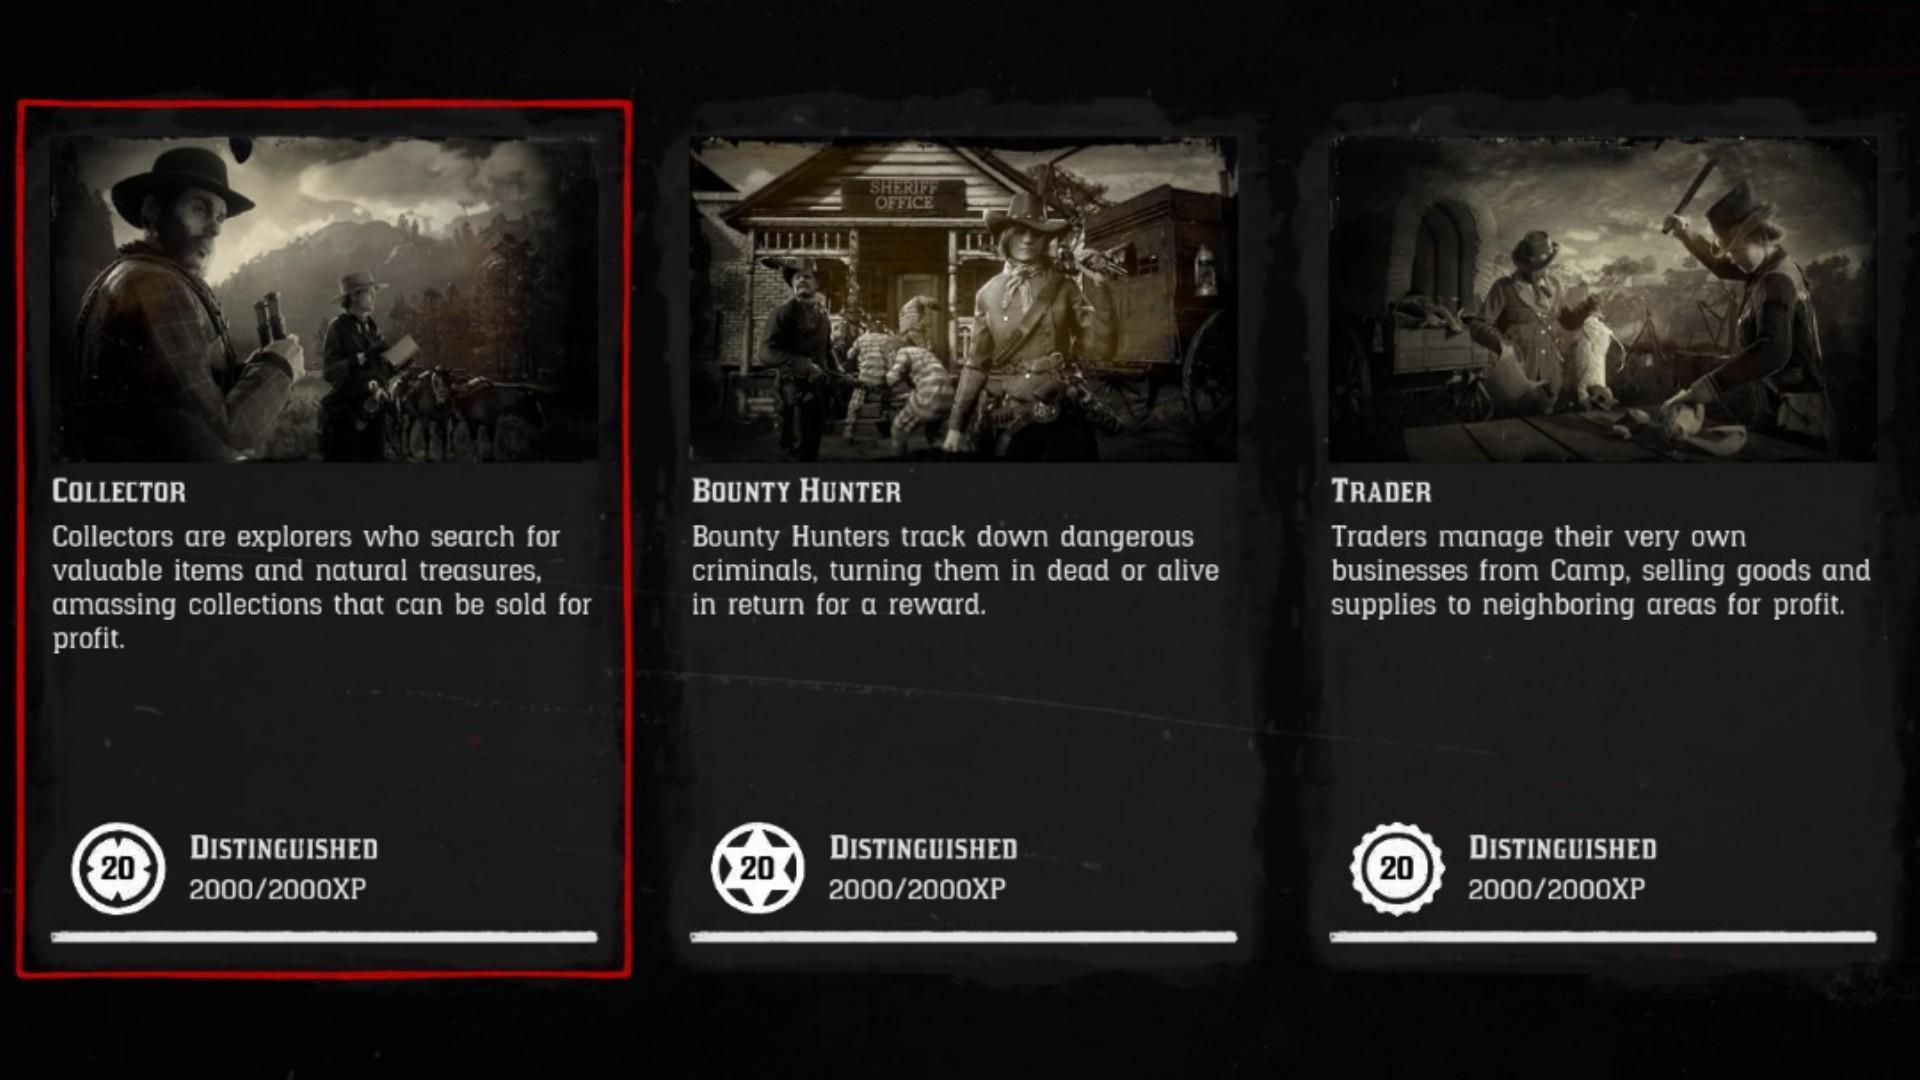 Red Dead Online: How to Easily Reach Rank 20 in the Collector Role and more (Thanks to the Community)